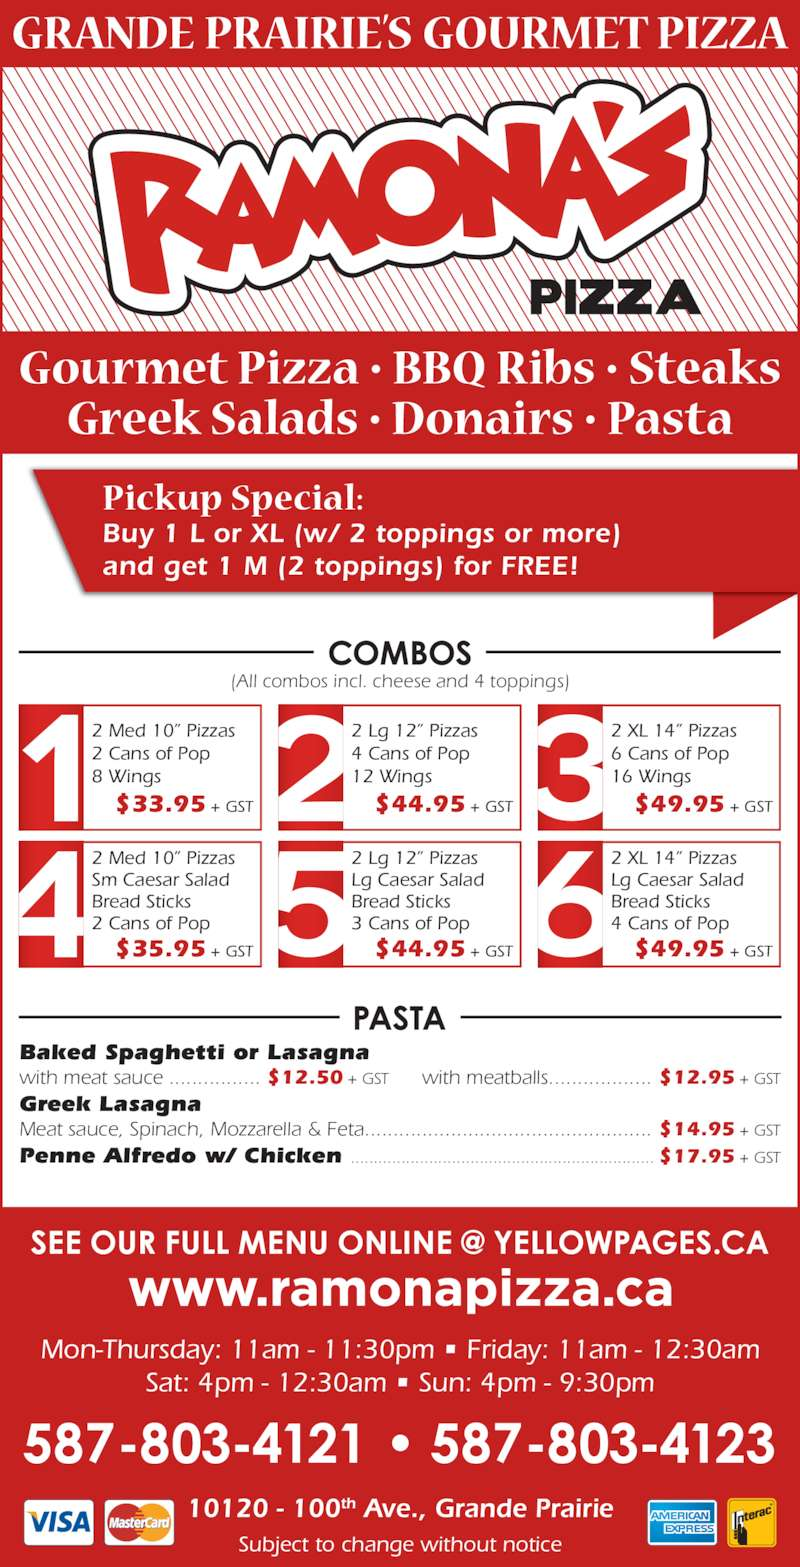 """Ramona Pizza & Family Restaurant (780-532-1534) - Display Ad - 2 XL 14"""" Pizzas 6 Cans of Pop Bread Sticks 2 Cans of Pop  $35.95 + GST Buy 1 L or XL (w/ 2 toppings or more) and get 1 M (2 toppings) for FREE! 2 Lg 12"""" Pizzas Lg Caesar Salad Bread Sticks 3 Cans of Pop  $44.95 + GST 2 XL 14"""" Pizzas Lg Caesar Salad Bread Sticks 4 Cans of Pop  $49.95 + GST Baked Spaghetti or Lasagna with meat sauce ................ $12.50 + GST with meatballs.................. $12.95 + GST Greek Lasagna Meat sauce, Spinach, Mozzarella & Feta.................................................. $14.95 + GST Penne Alfredo w/ Chicken .................................................................. $17.95 + GST 16 Wings  $49.95 + GST 2 Med 10"""" Pizzas Sm Caesar Salad Mon-Thursday: 11am - 11:30pm • Friday: 11am - 12:30am Sat: 4pm - 12:30am • Sun: 4pm - 9:30pm 10120 - 100th Ave., Grande Prairie Subject to change without notice 2 Med 10"""" Pizzas 2 Cans of Pop 8 Wings  $33.95 + GST 2 Lg 12"""" Pizzas 4 Cans of Pop 12 Wings  $44.95 + GST (All combos incl. cheese and 4 toppings)"""